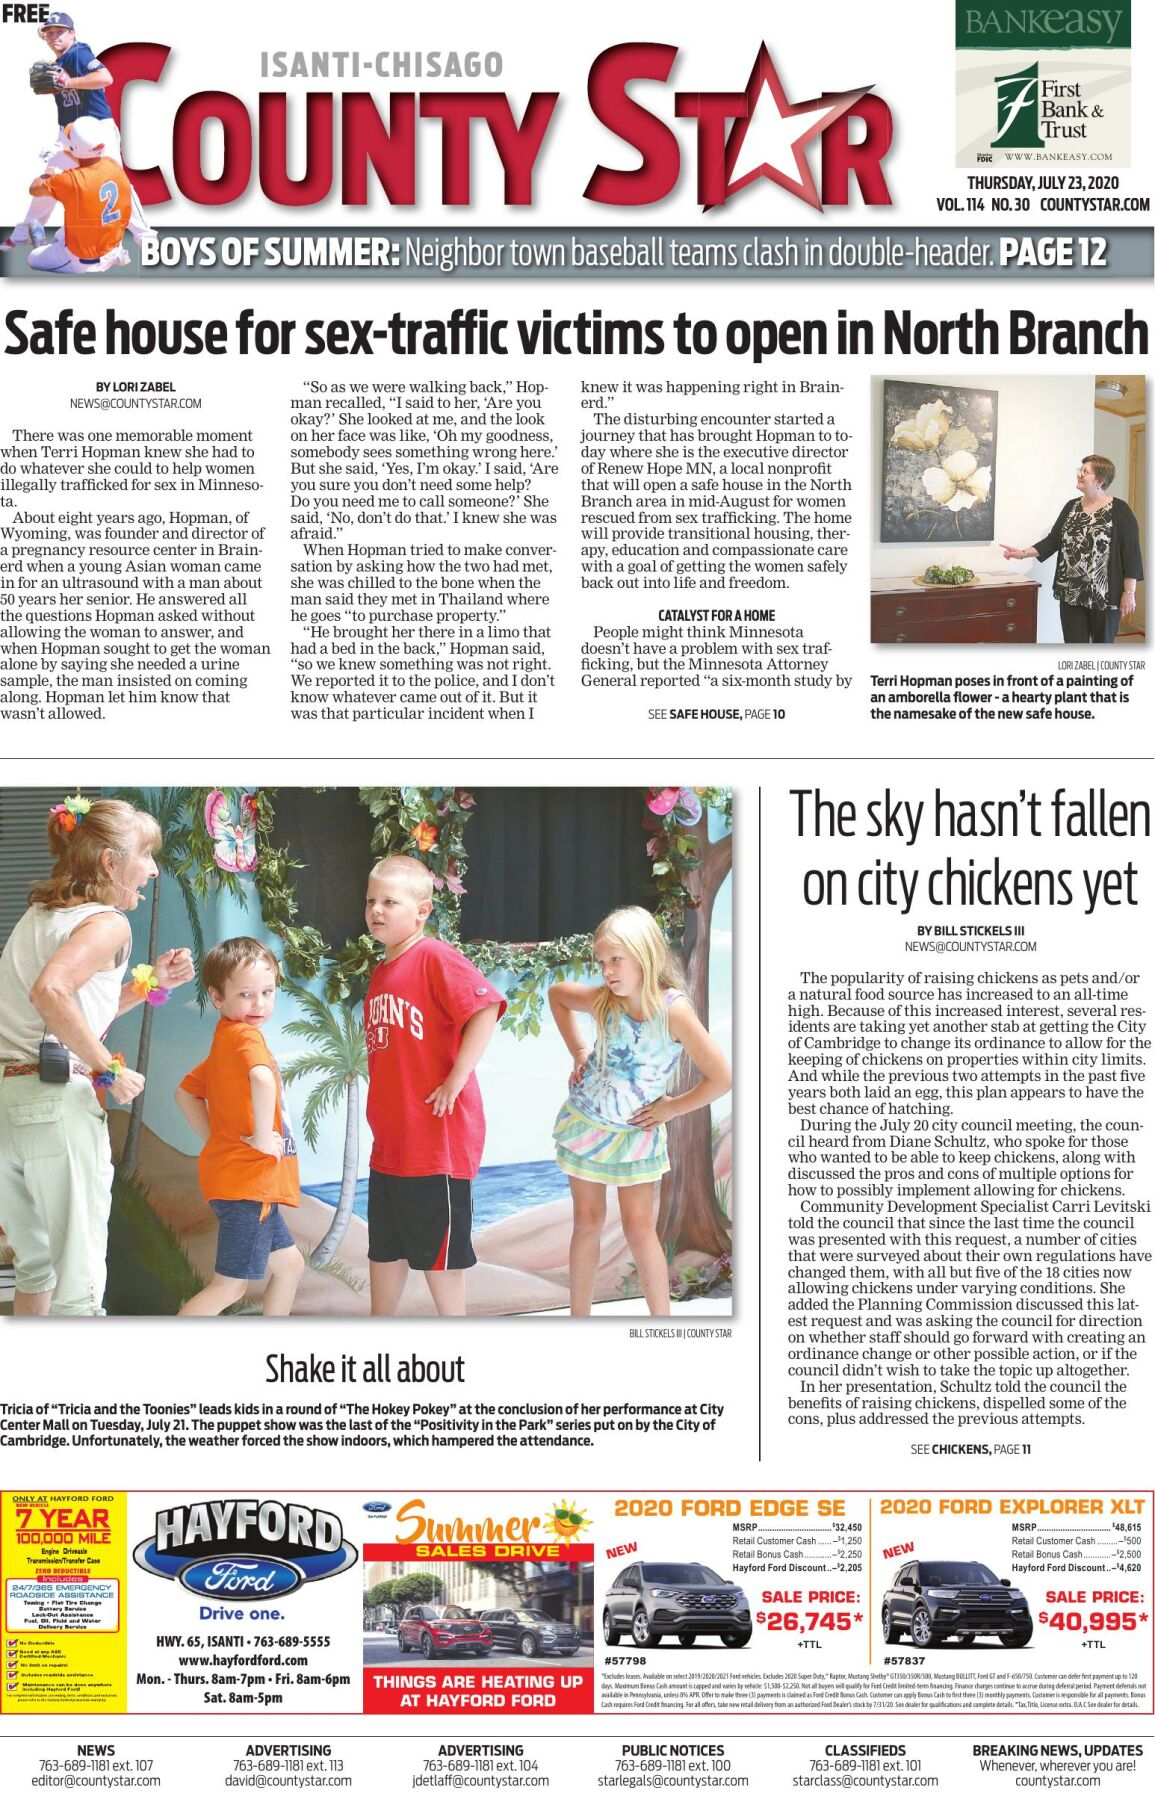 Isanti-Chisago County Star July 23, 2020 e-edition